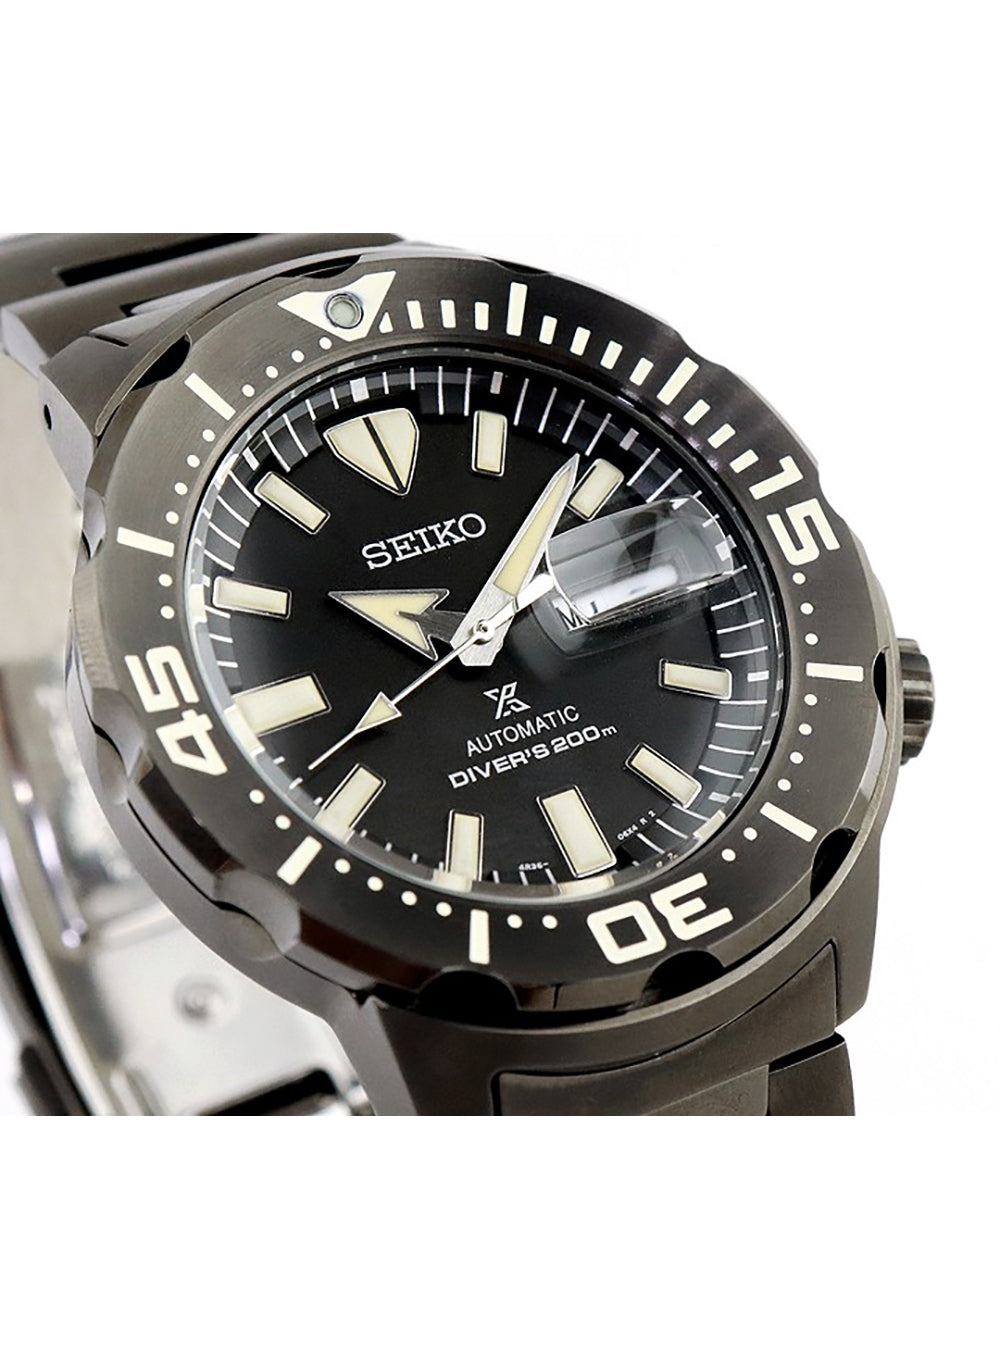 SEIKO PROSPEX MONSTER SBDY037 MENS MADE IN JAPAN JDM